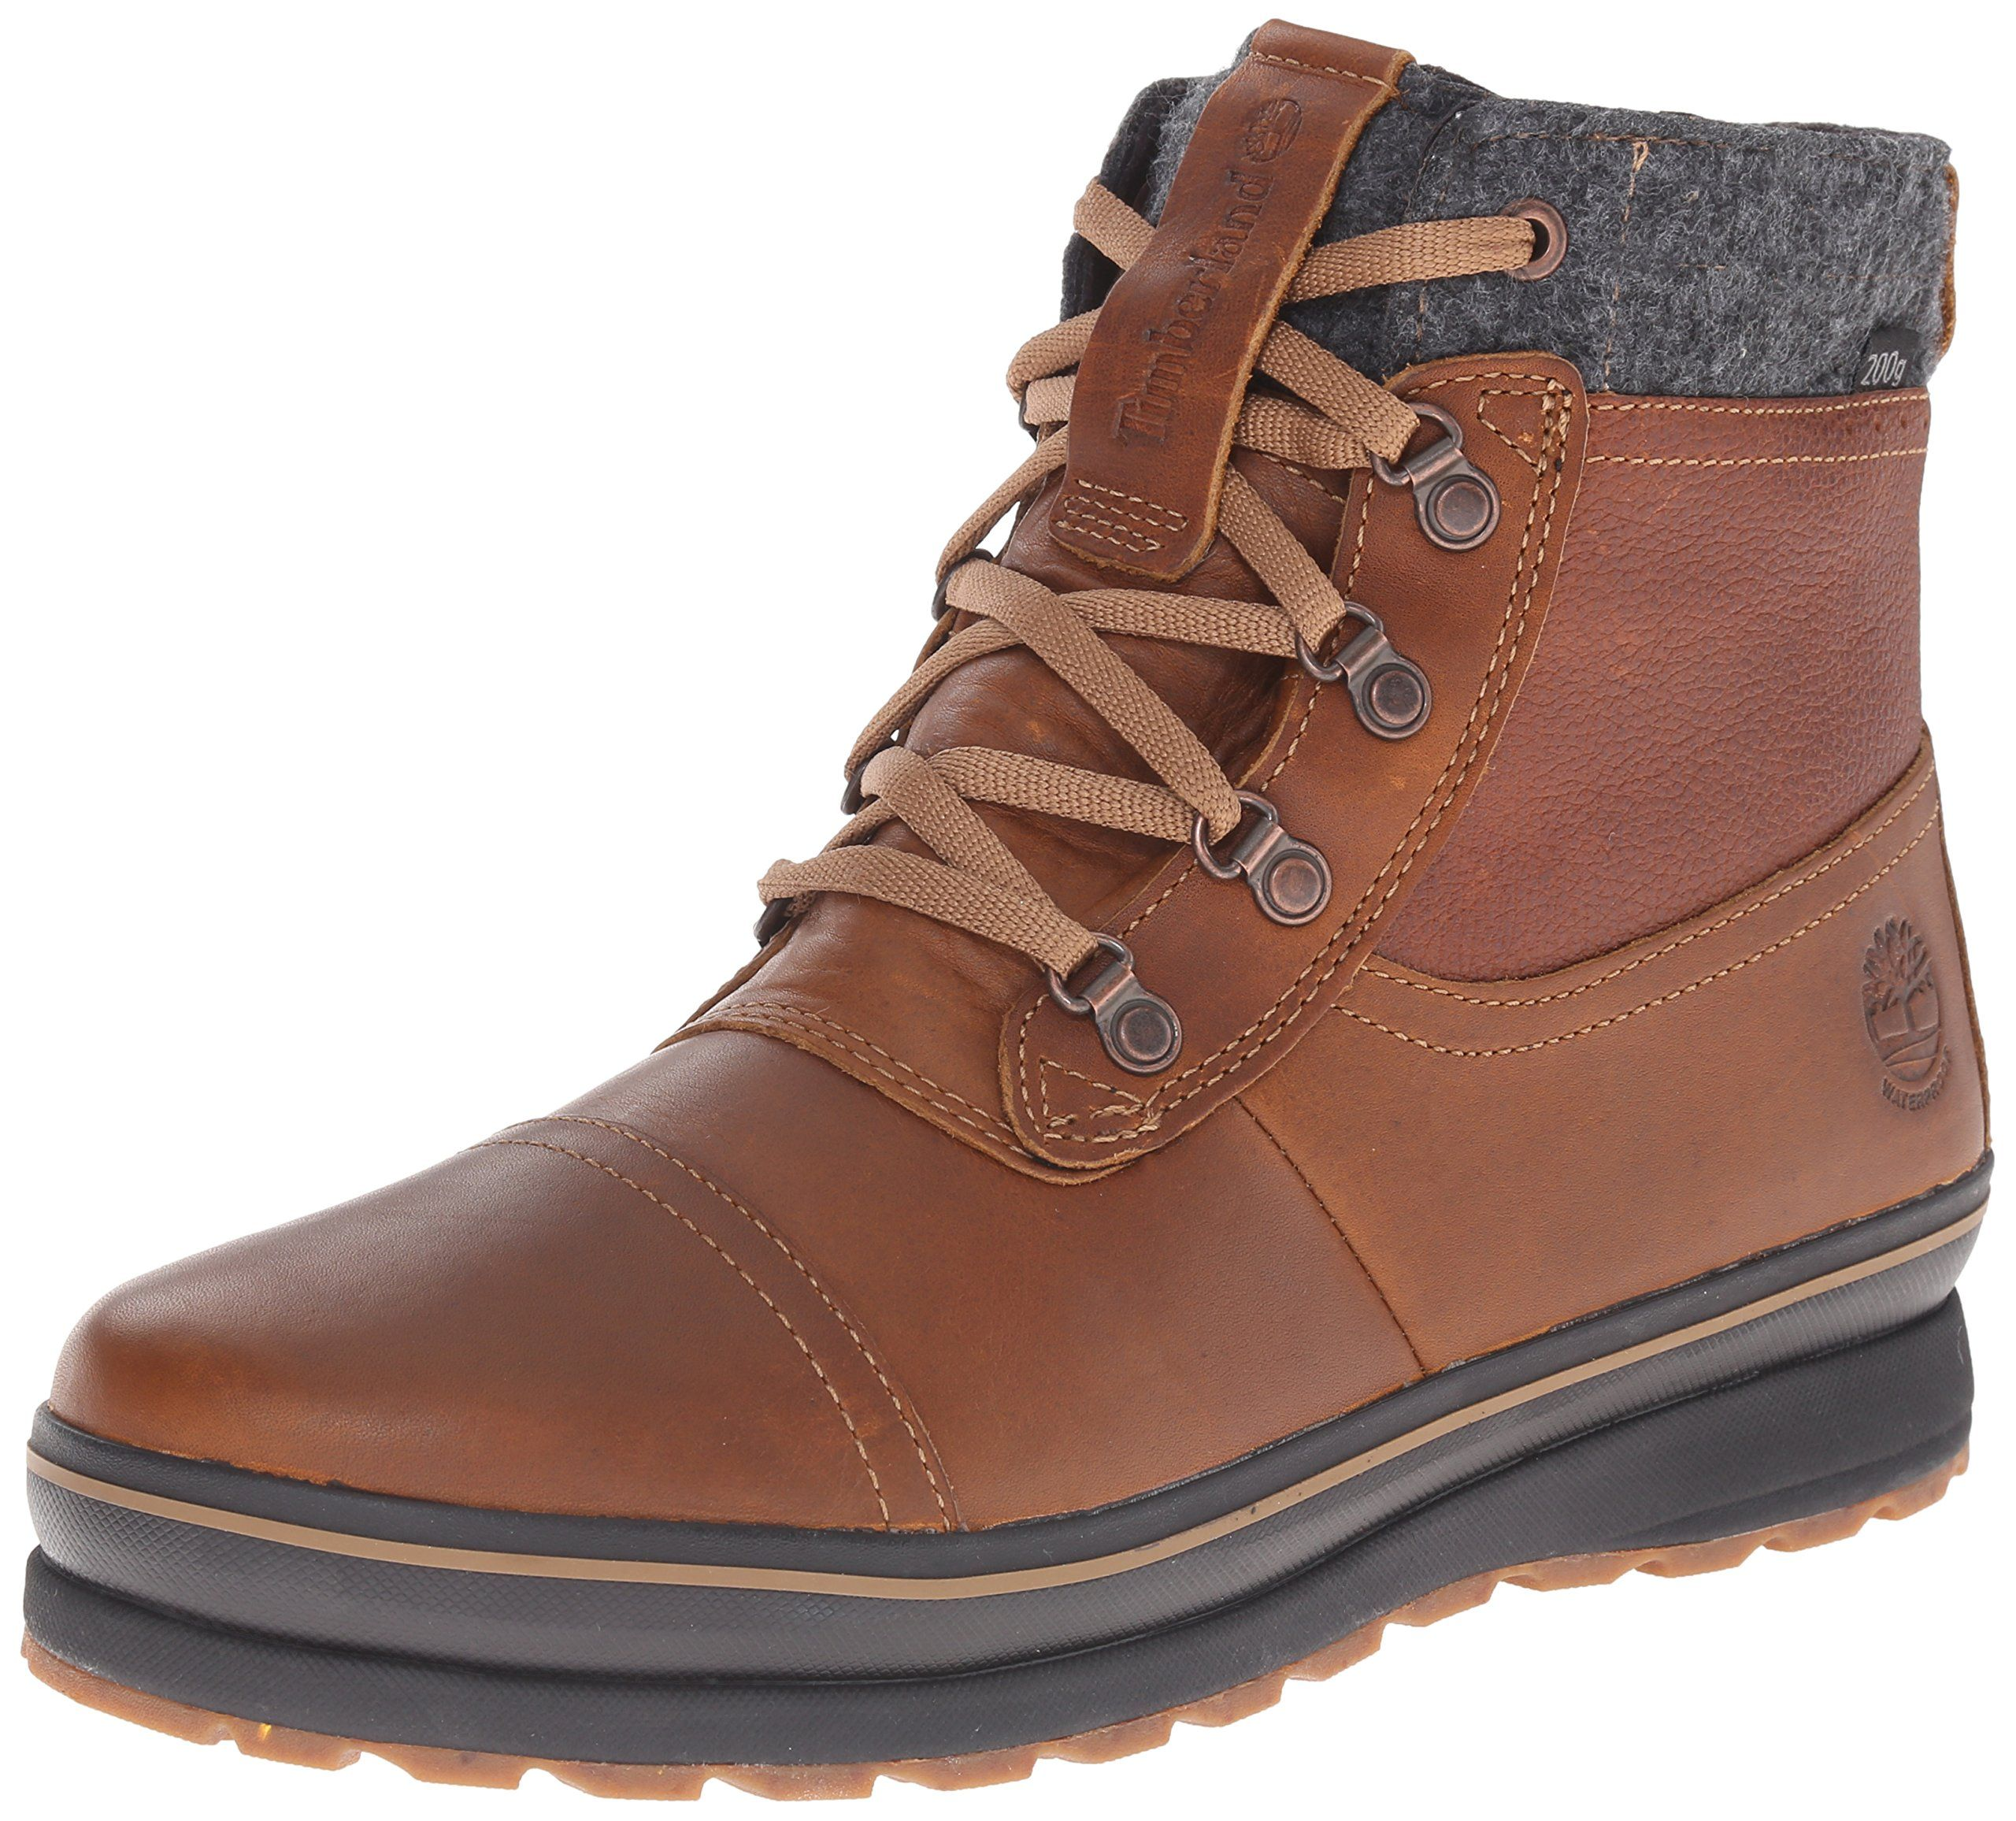 Amazon.com: Timberland Men's Schazzberg Mid WP Insulated